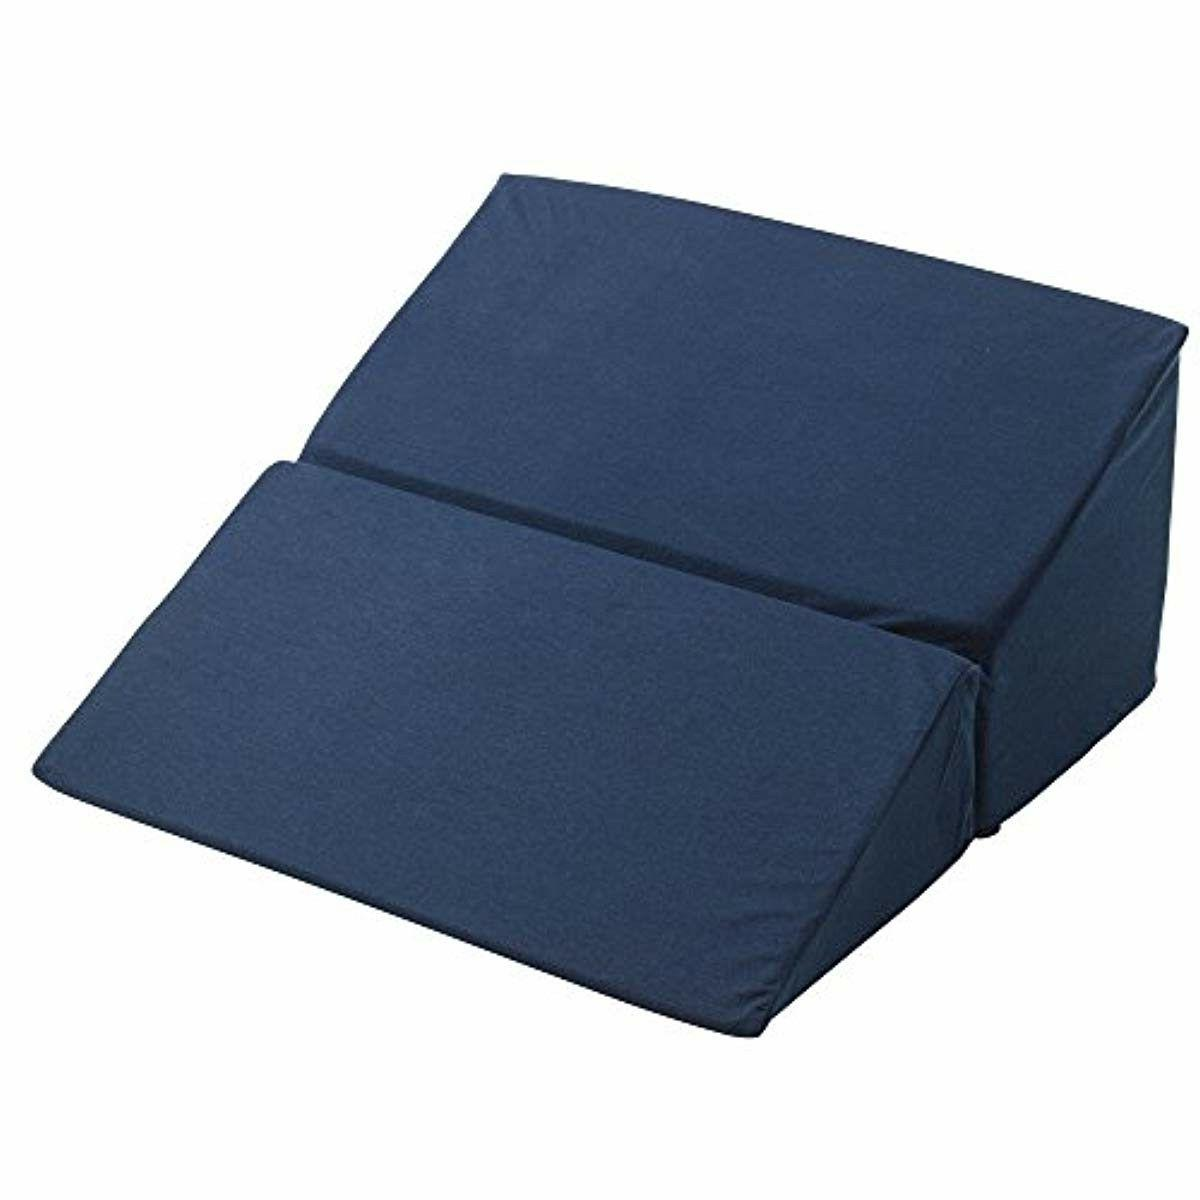 12 in large folding bed wedge pillow